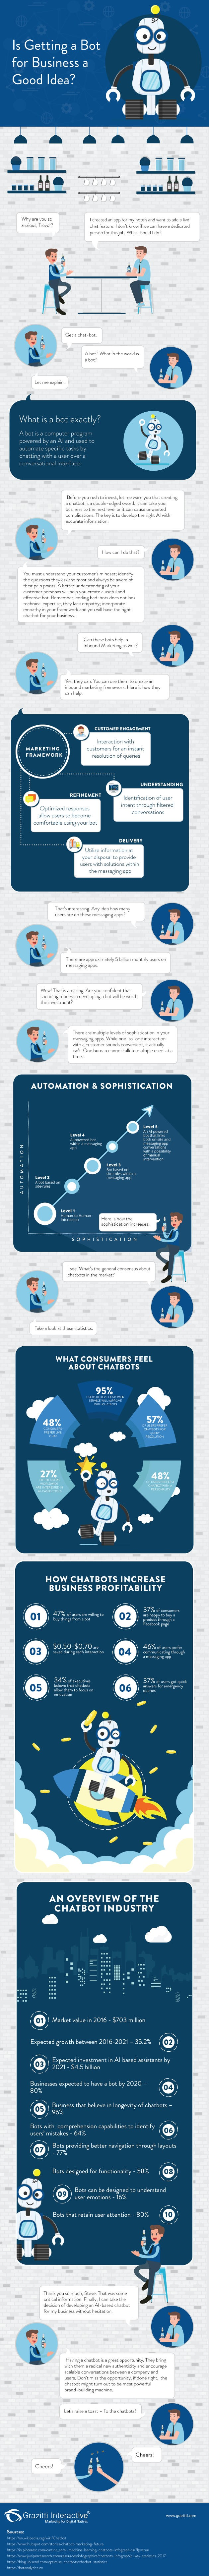 https://sherpa2017.blob.core.windows.net/images/contenthub-posts/06-2018/June-18---Chatbot---Infographic.jpg